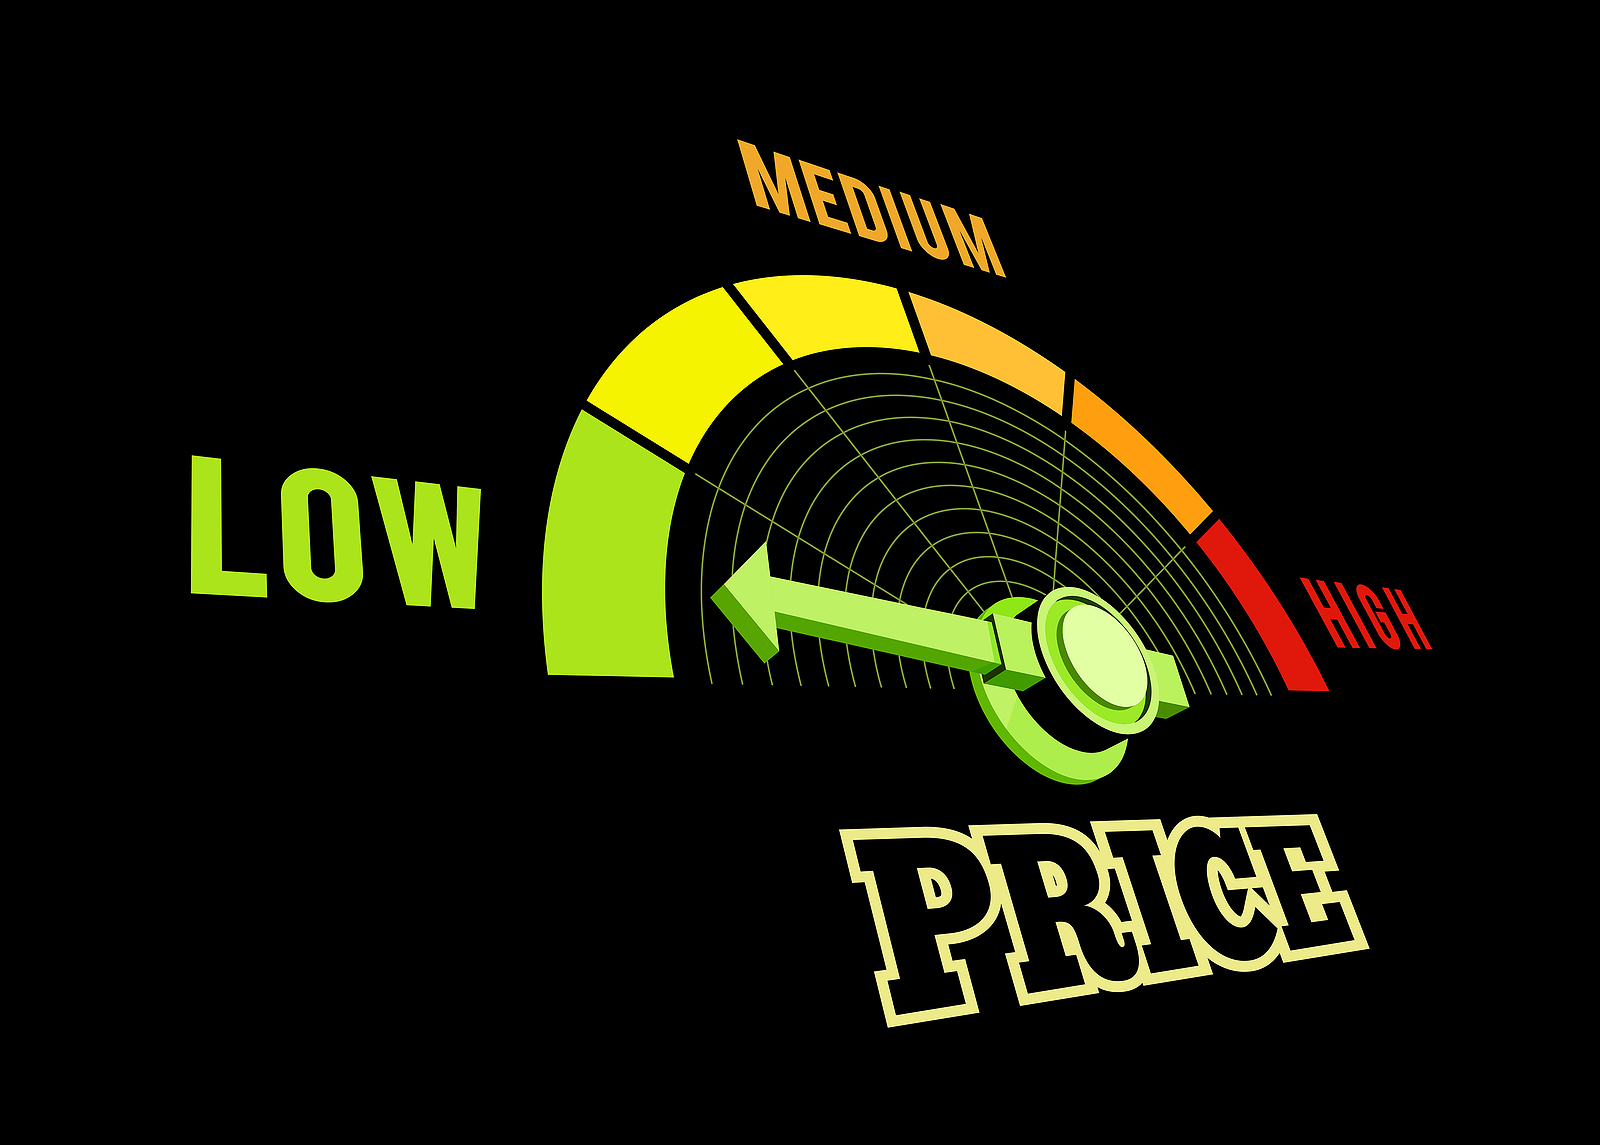 Speedometer depicts the low prices that Wave provides drivers through discounts.